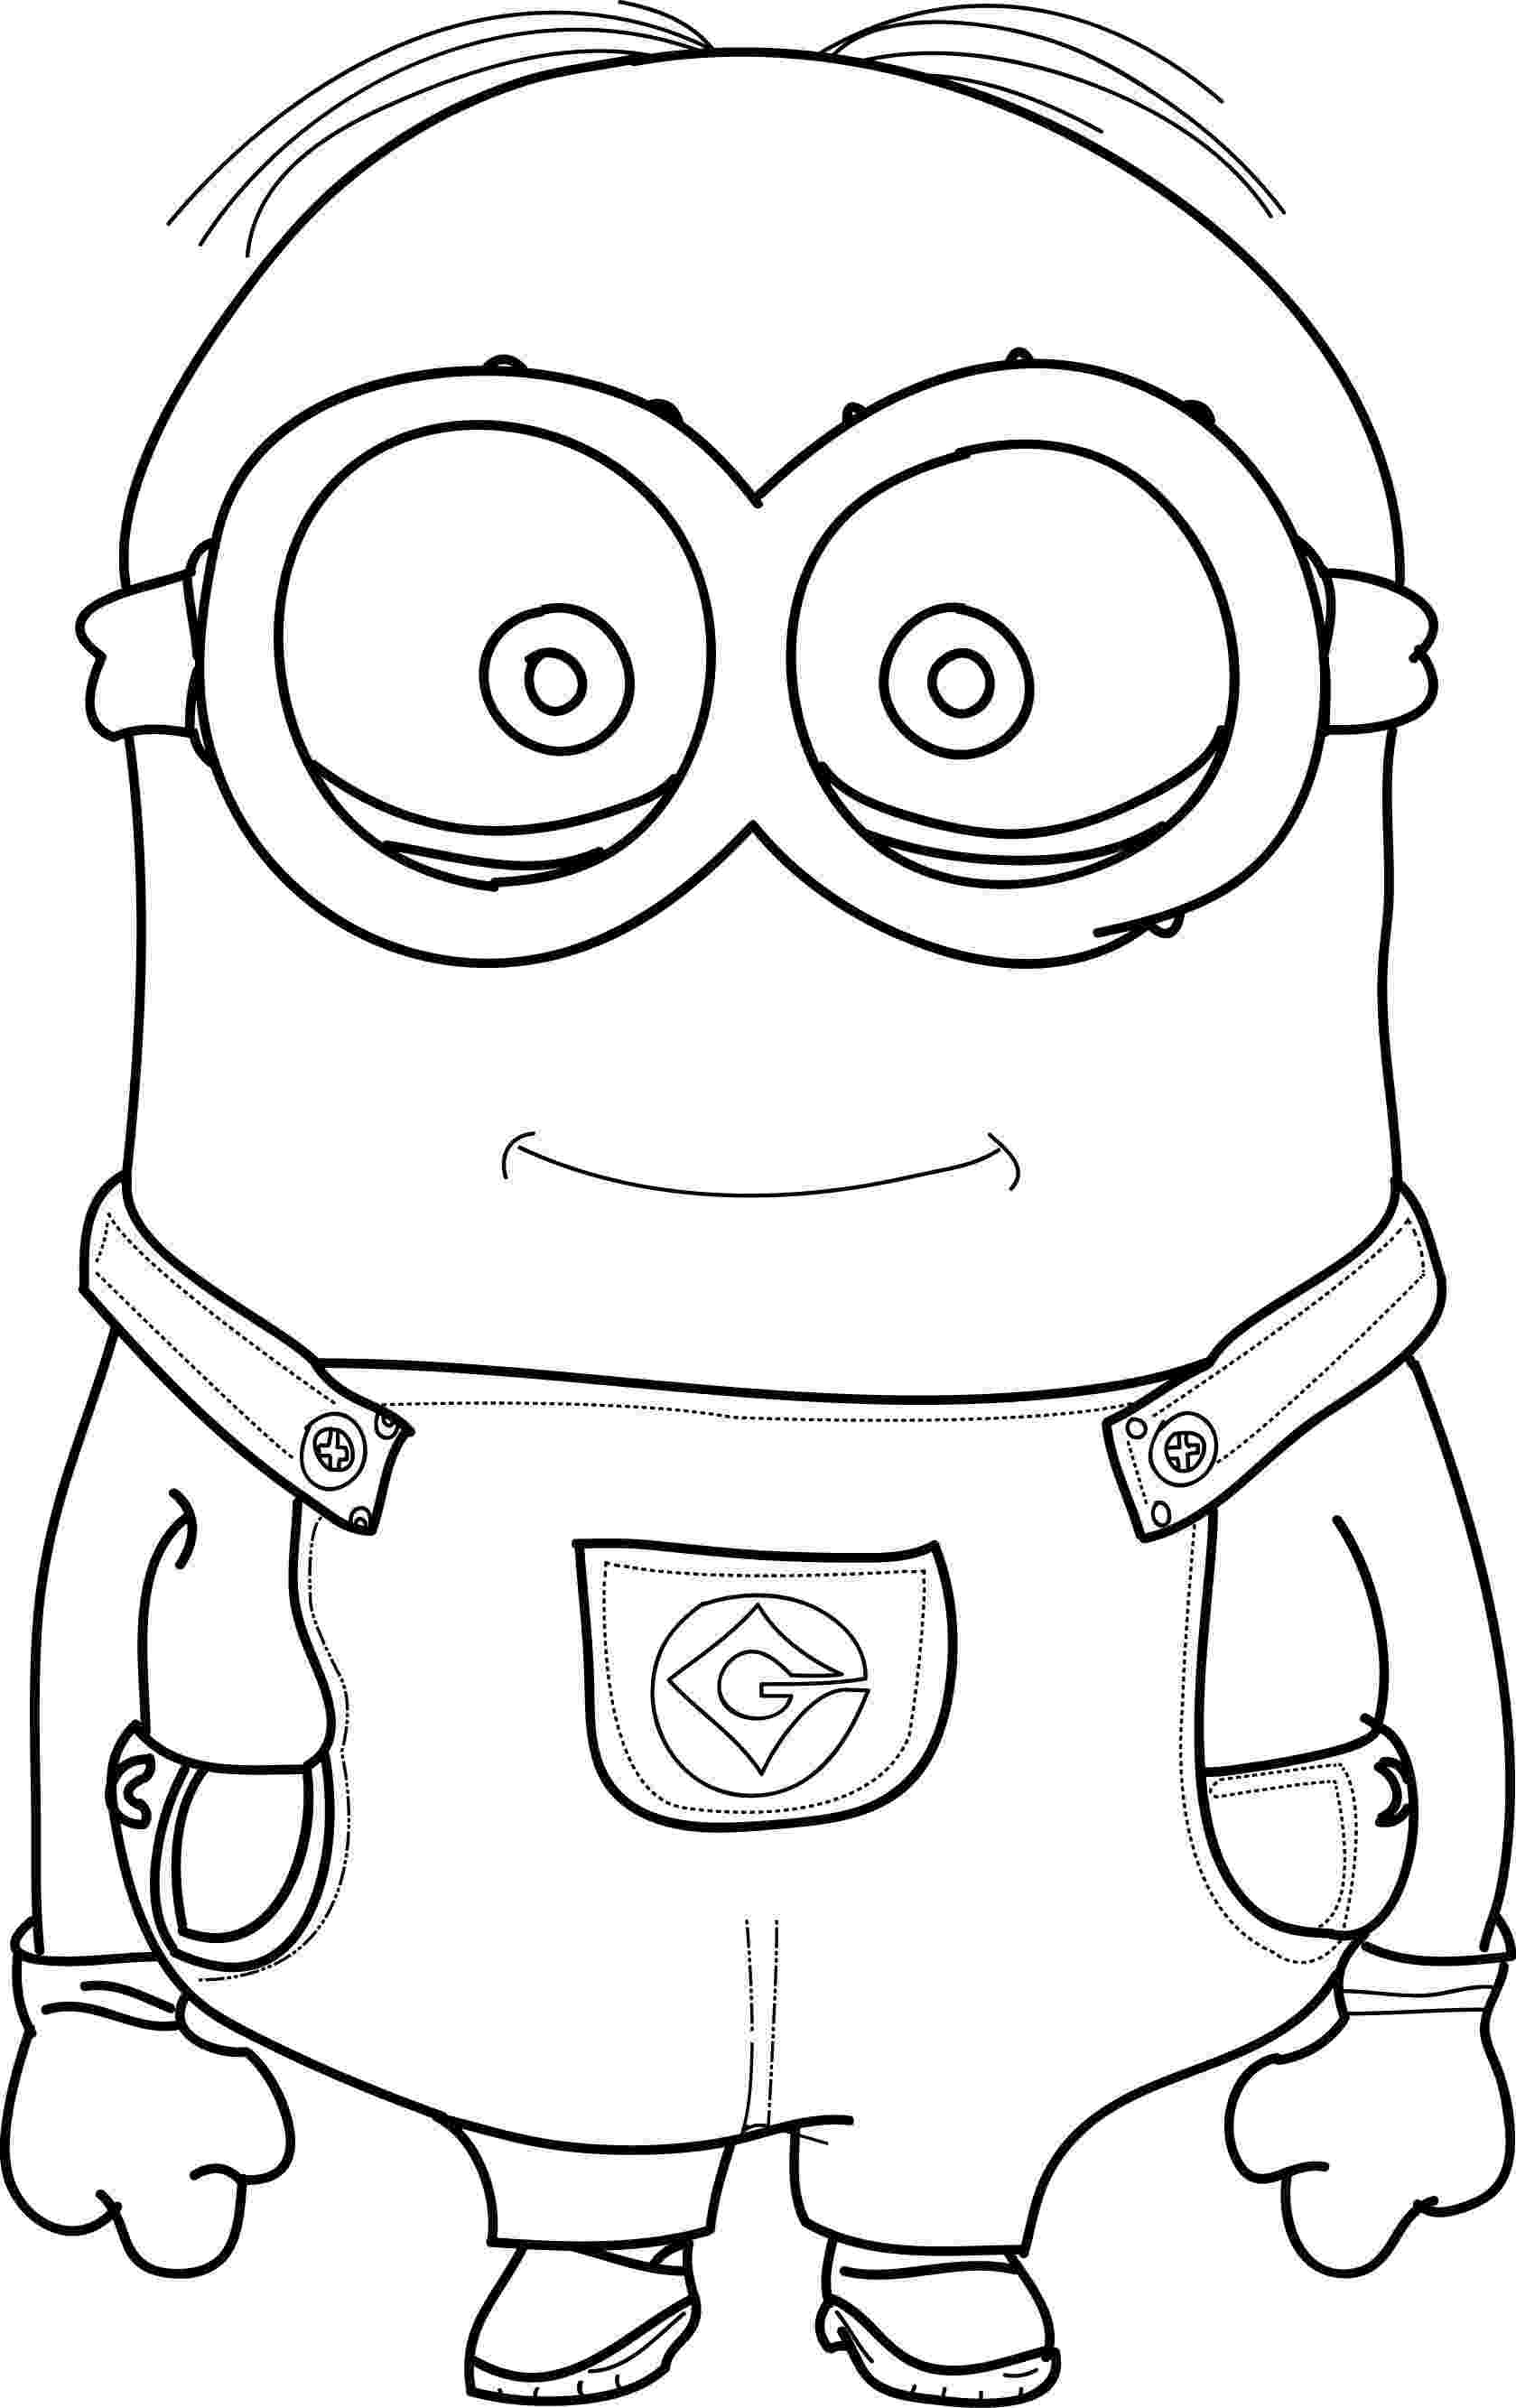 cool coloring graffiti coloring pages to download and print for free coloring cool